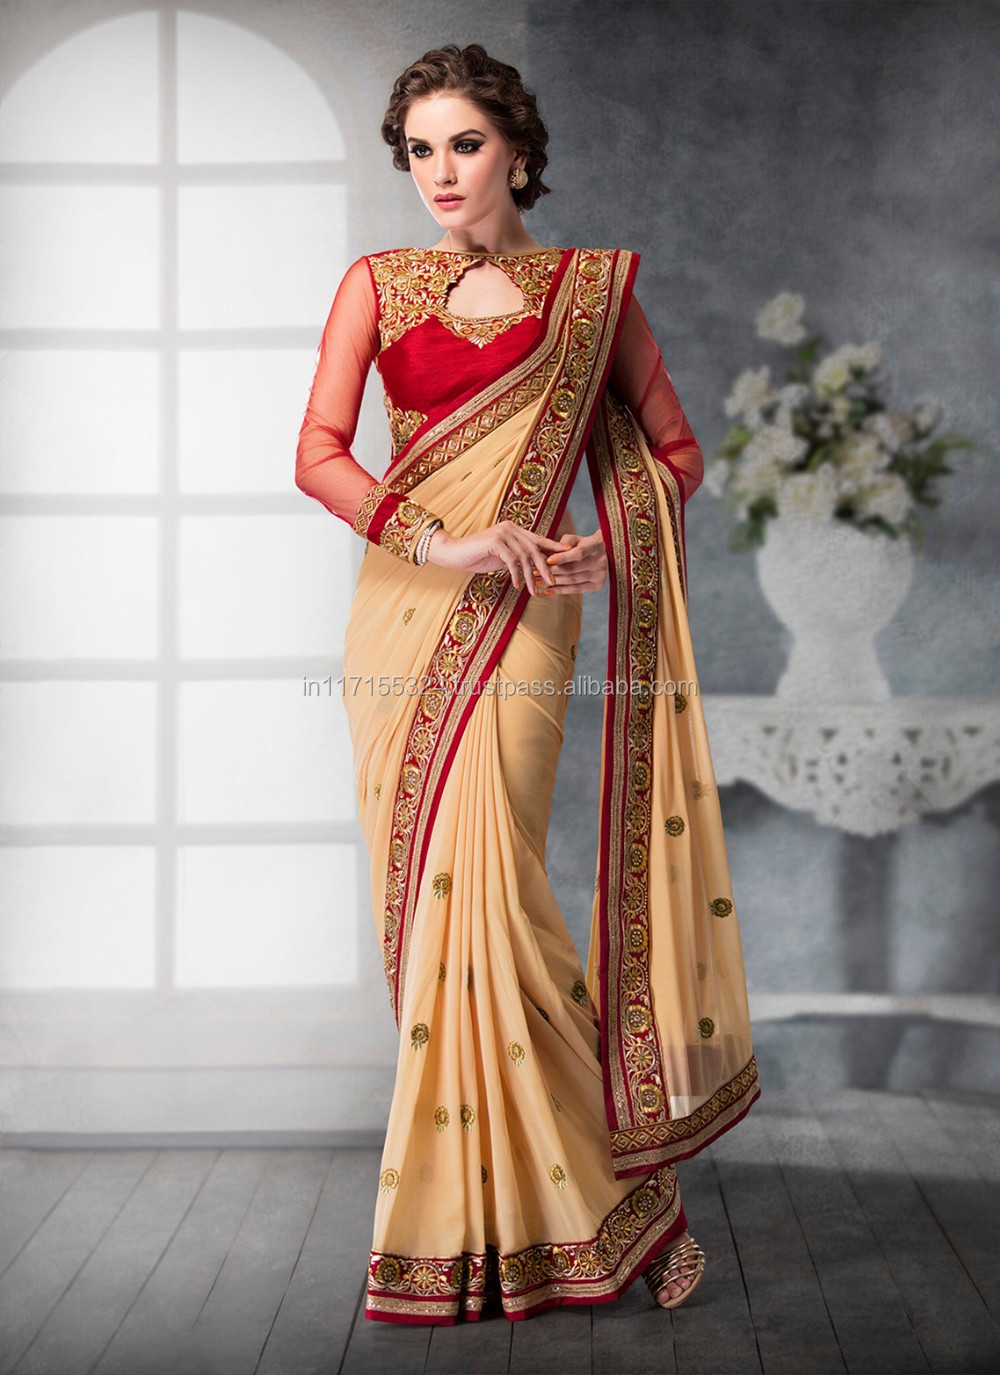 red jacket hindu dating site Explore bharatplaza's board south indian mens wear on pinterest nehru jacket, red kurta gorgeous hindu ceremony outfit for jis if we can get in our colors.